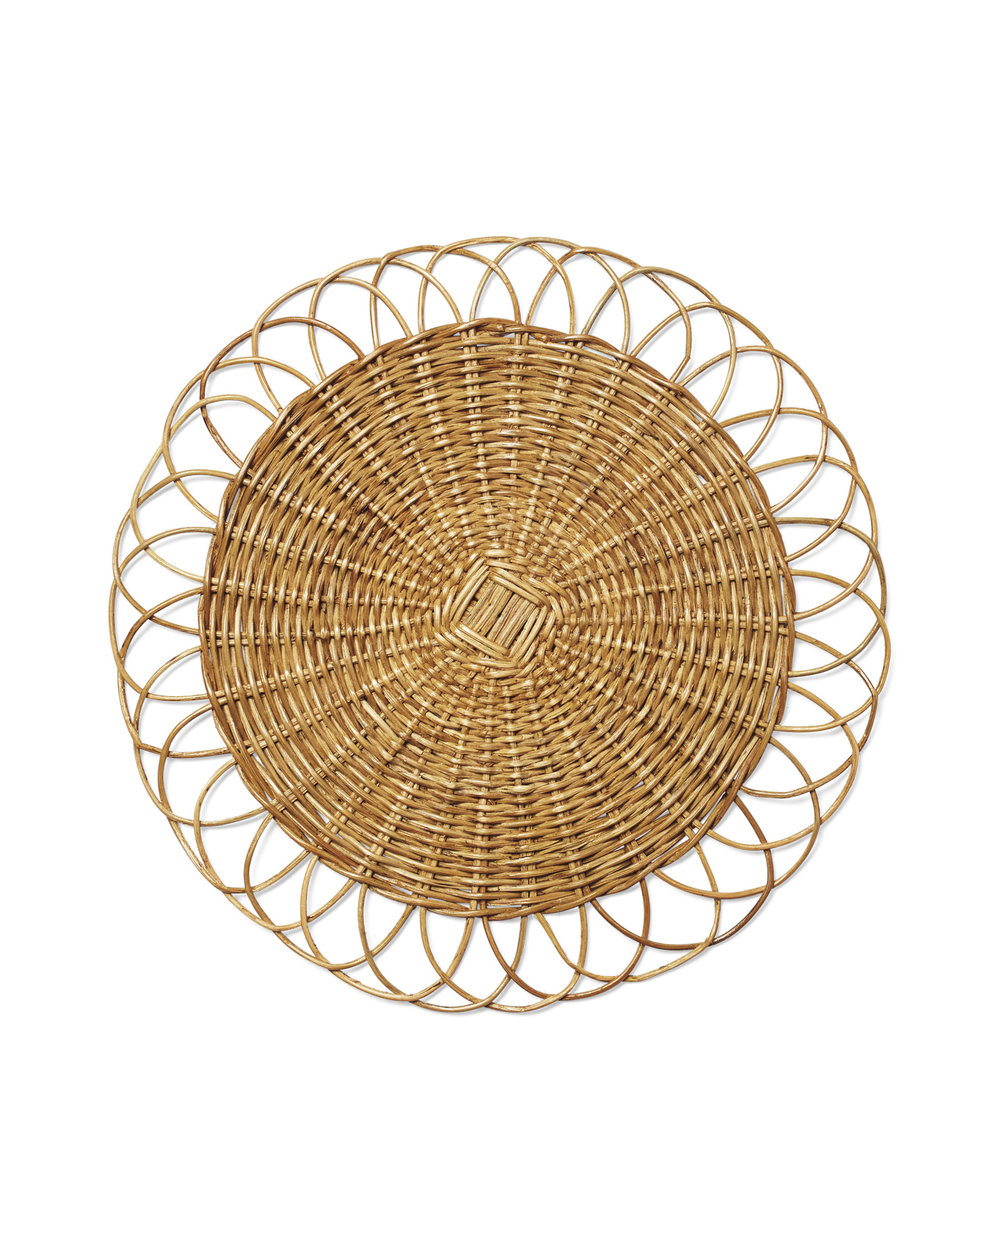 PR_Loop_Rattan_Placemat_Circle_MV_Crop_SH-1.jpg